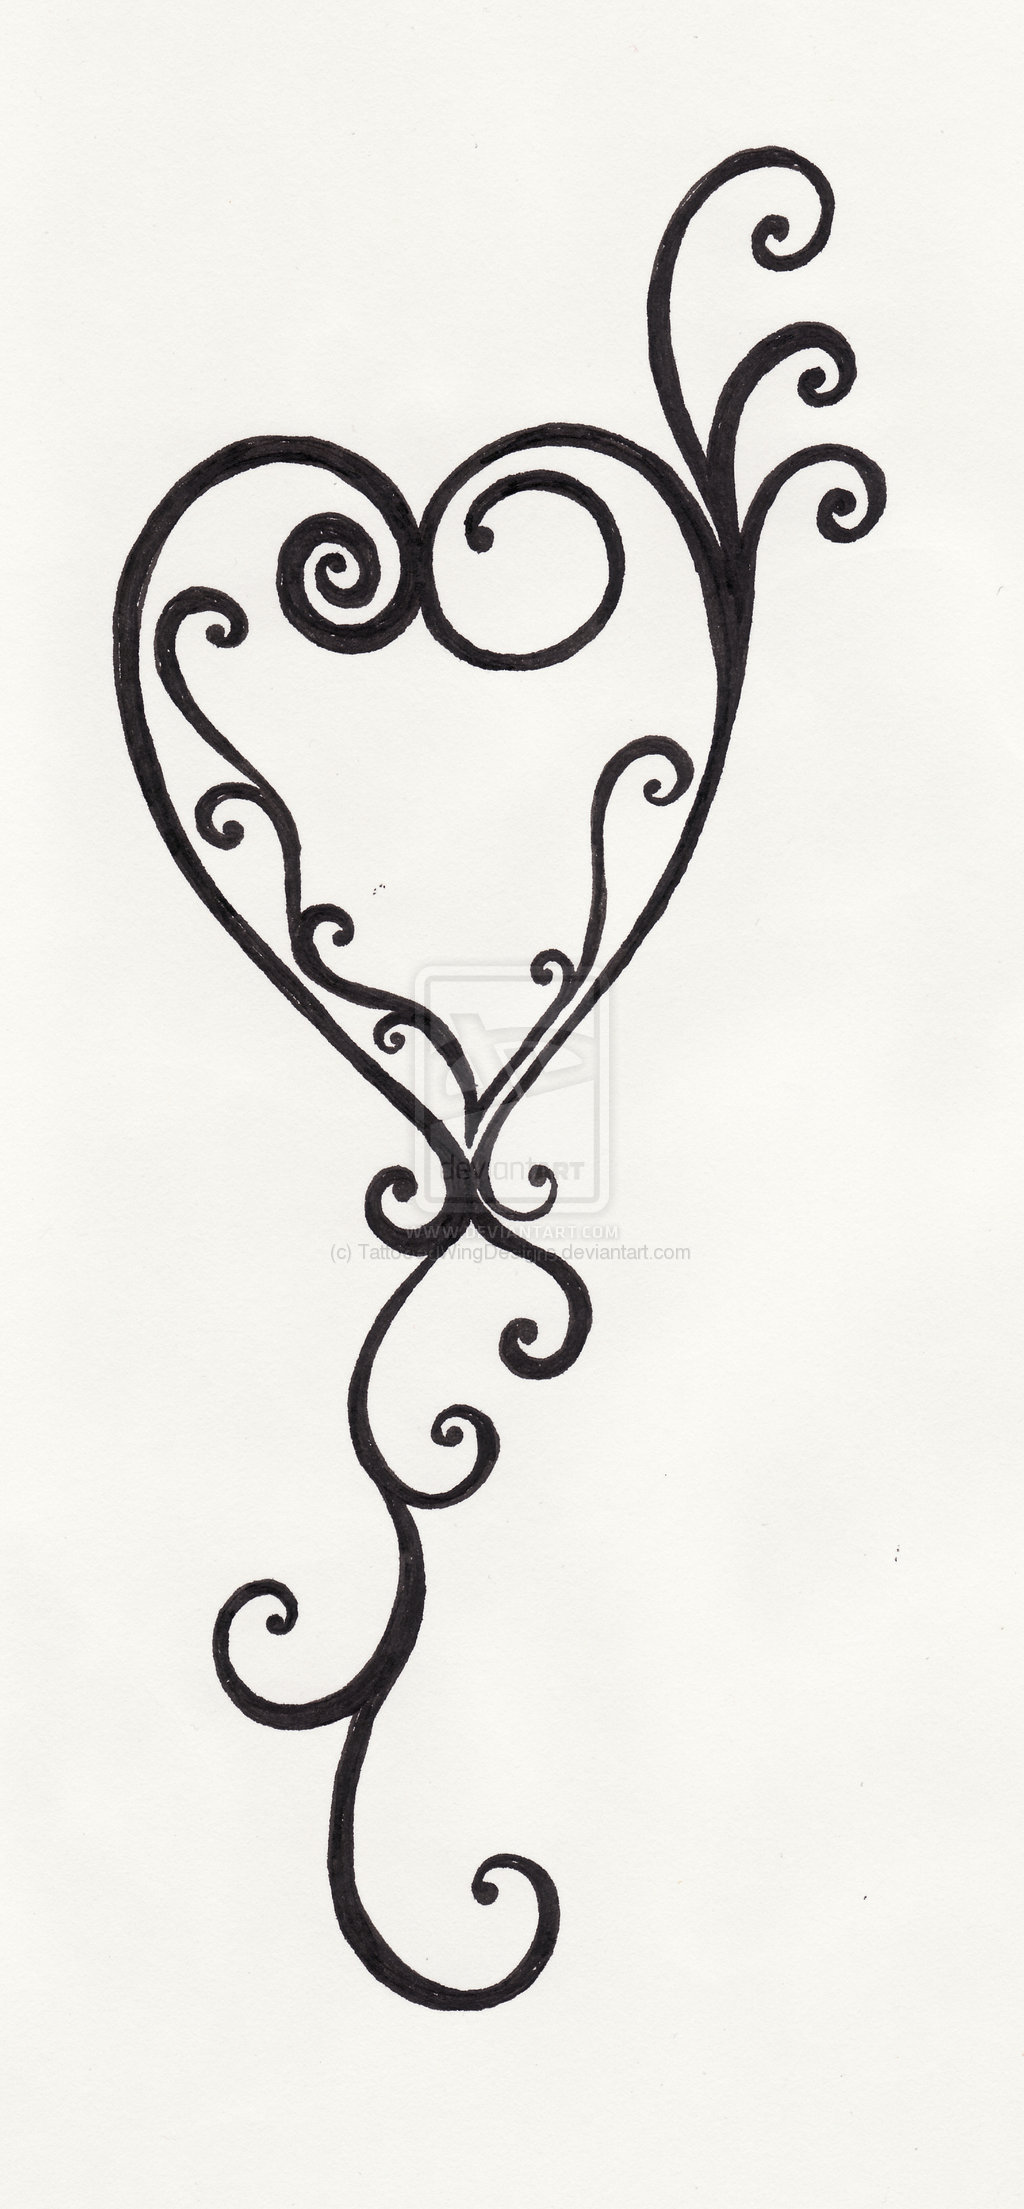 Swirl heart tattoo clipart best for Swirl tattoo designs